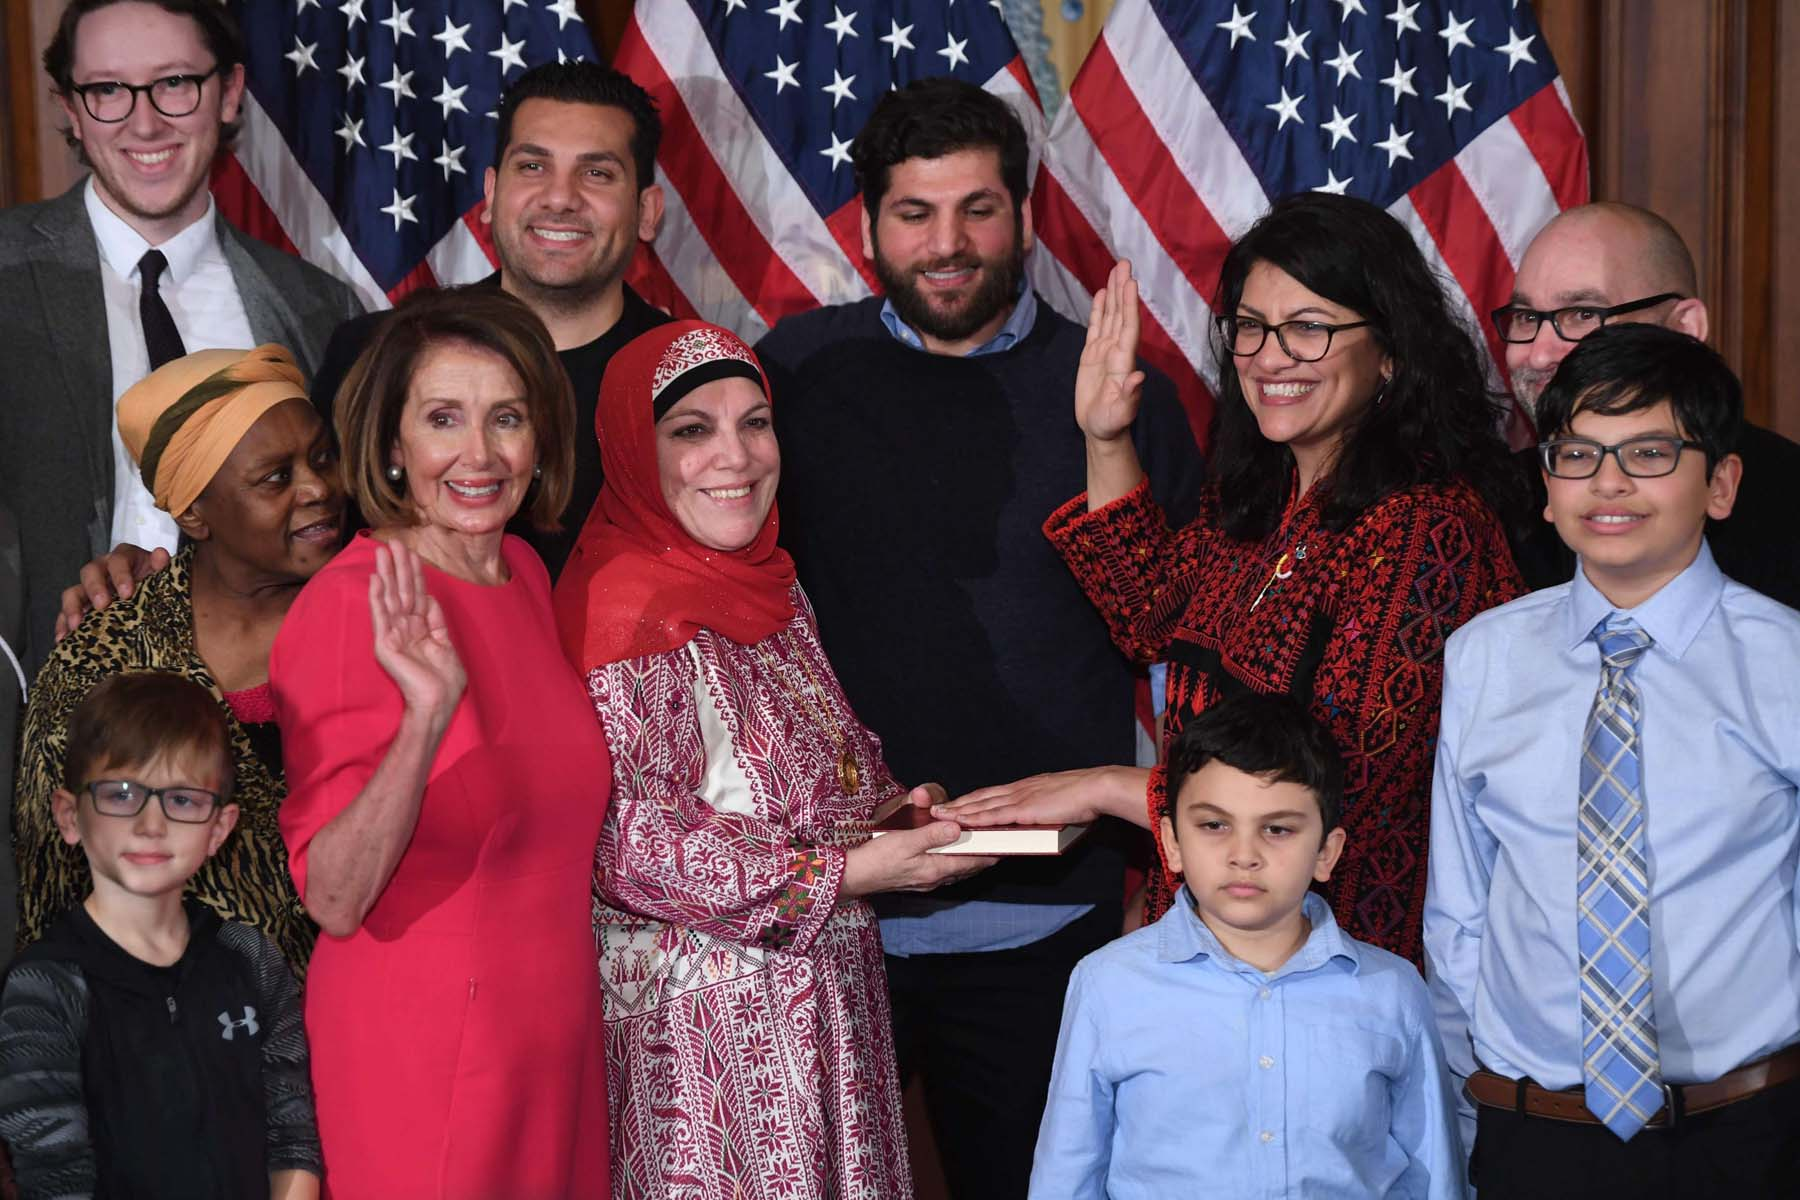 US House Representative member Rashida Tlaib (3rd R) participates in a ceremonial swearing-in with Speaker of the House Nancy Pelosi (4th R) , January 4. (AFP)